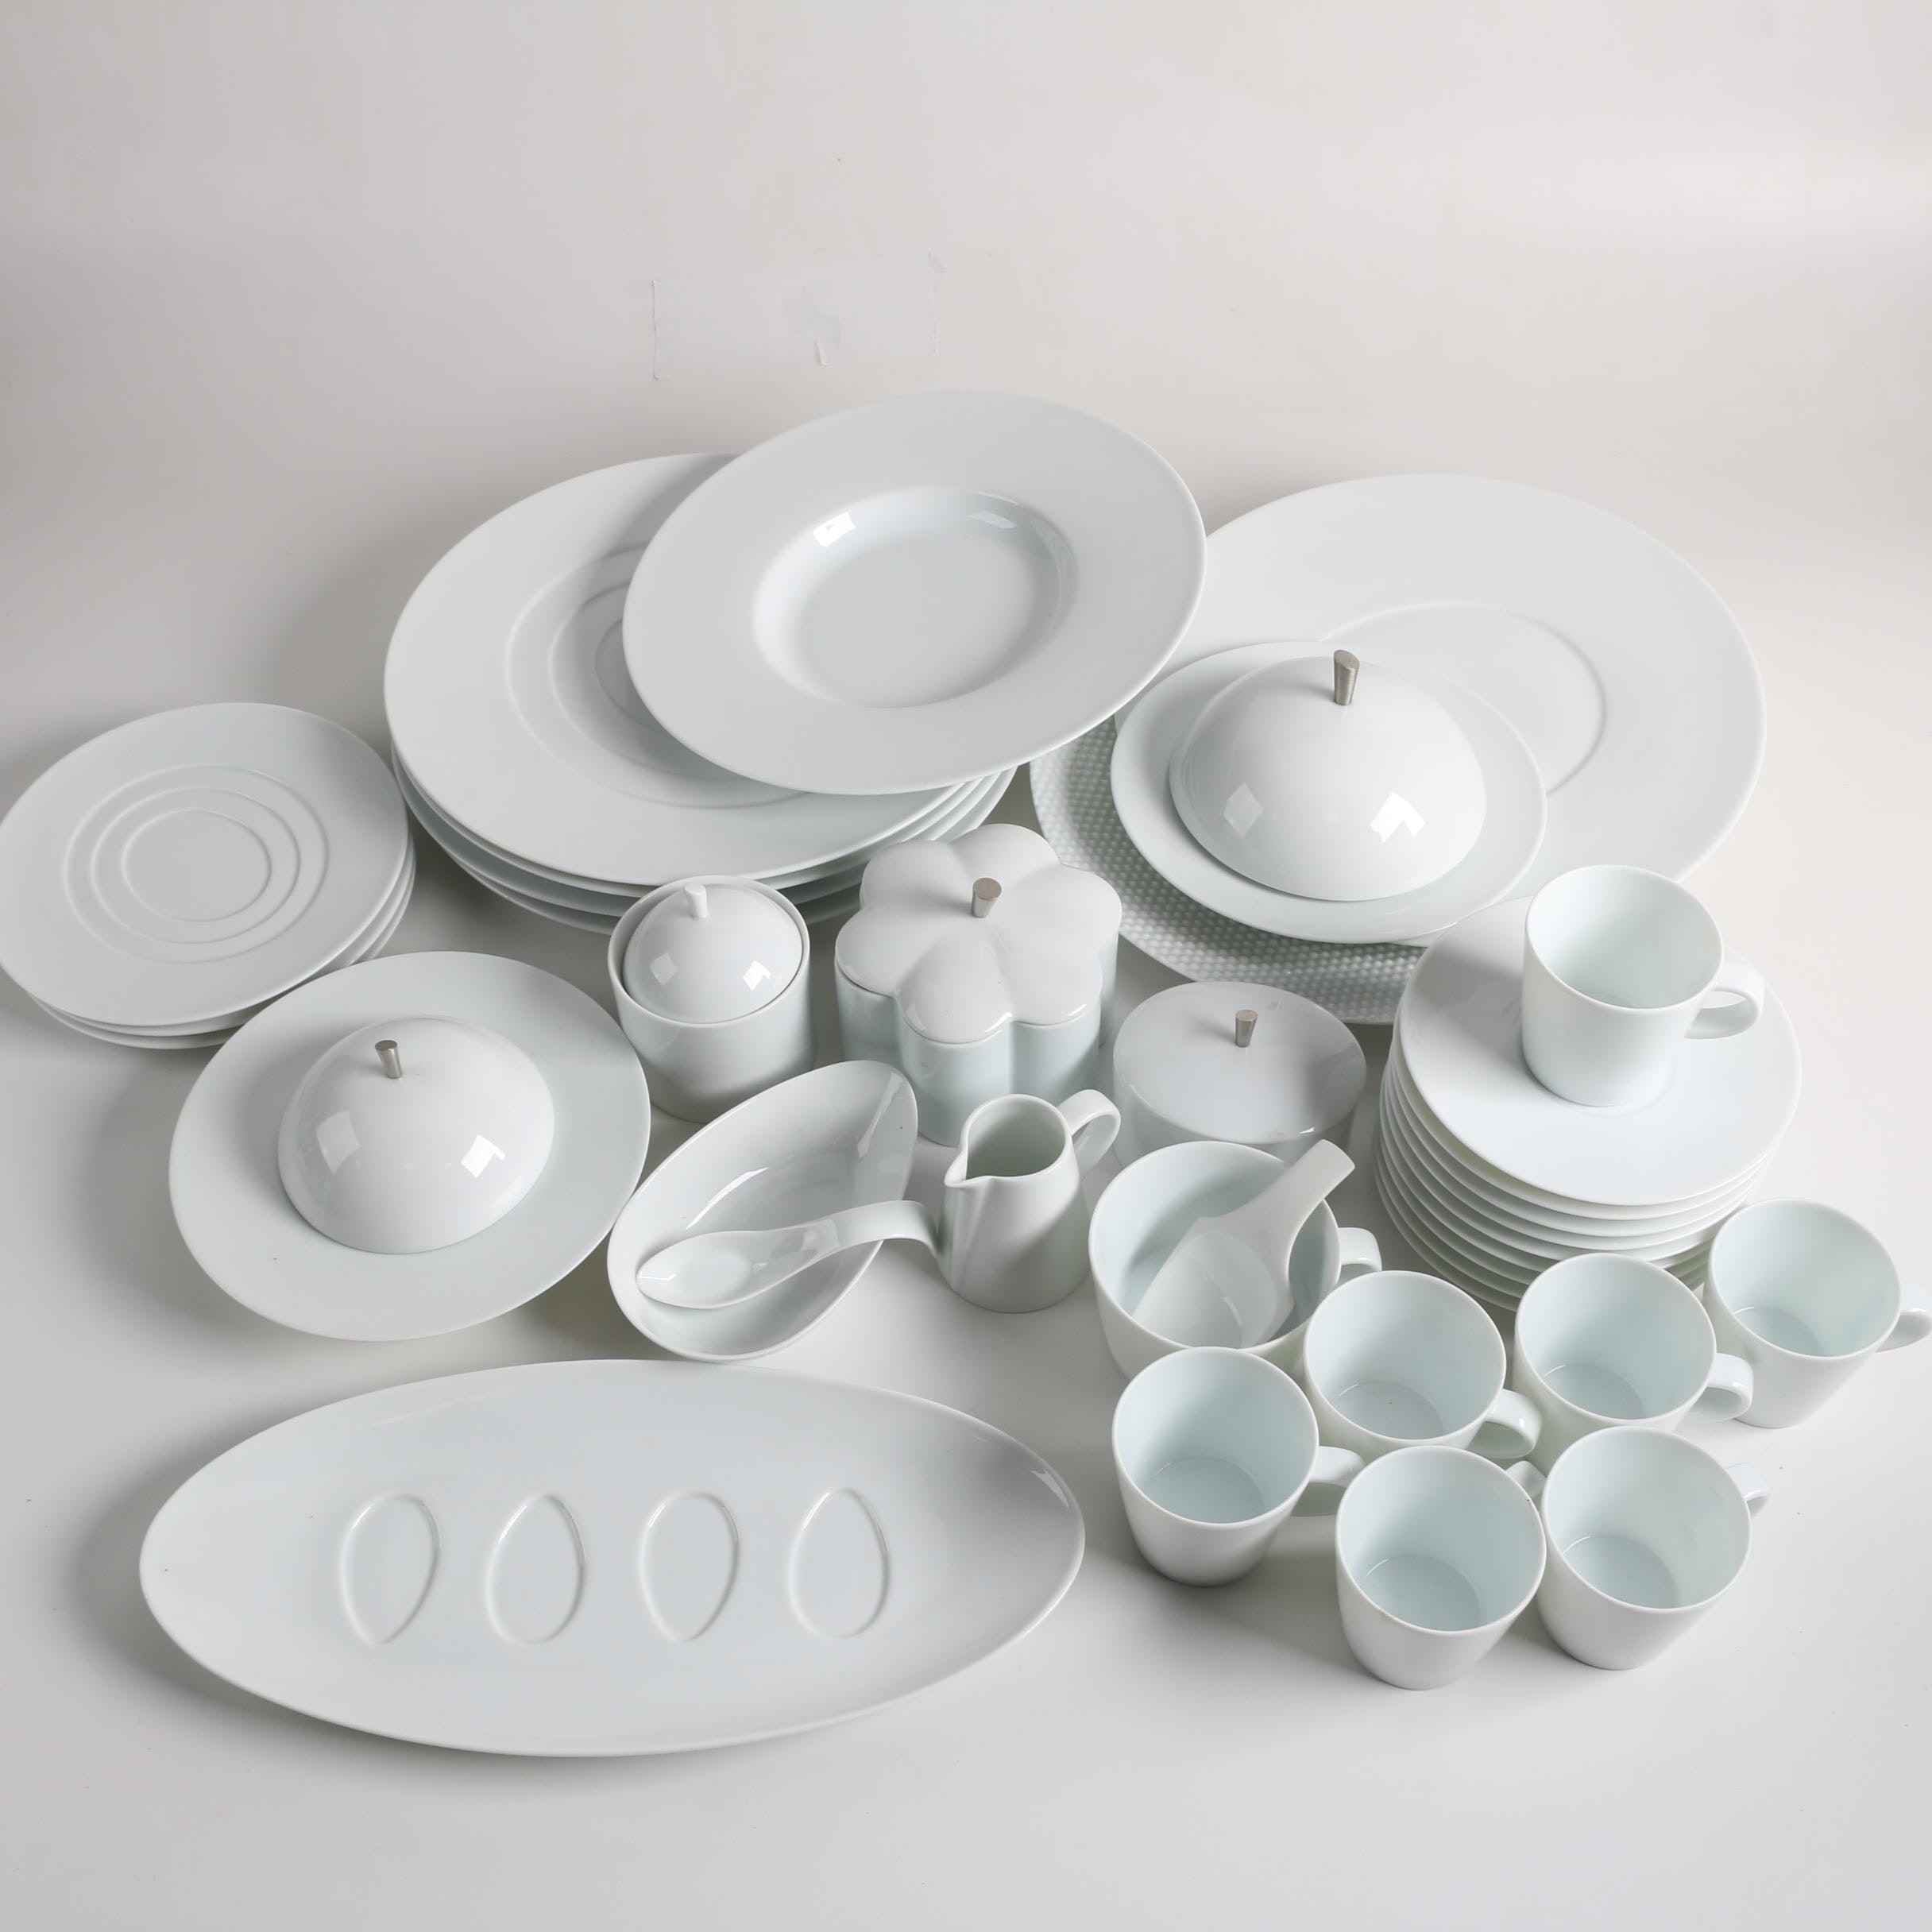 """Raynaud Limoges """"Hommage Collection"""" by Thomas Keller Porcelain Dinnerware"""